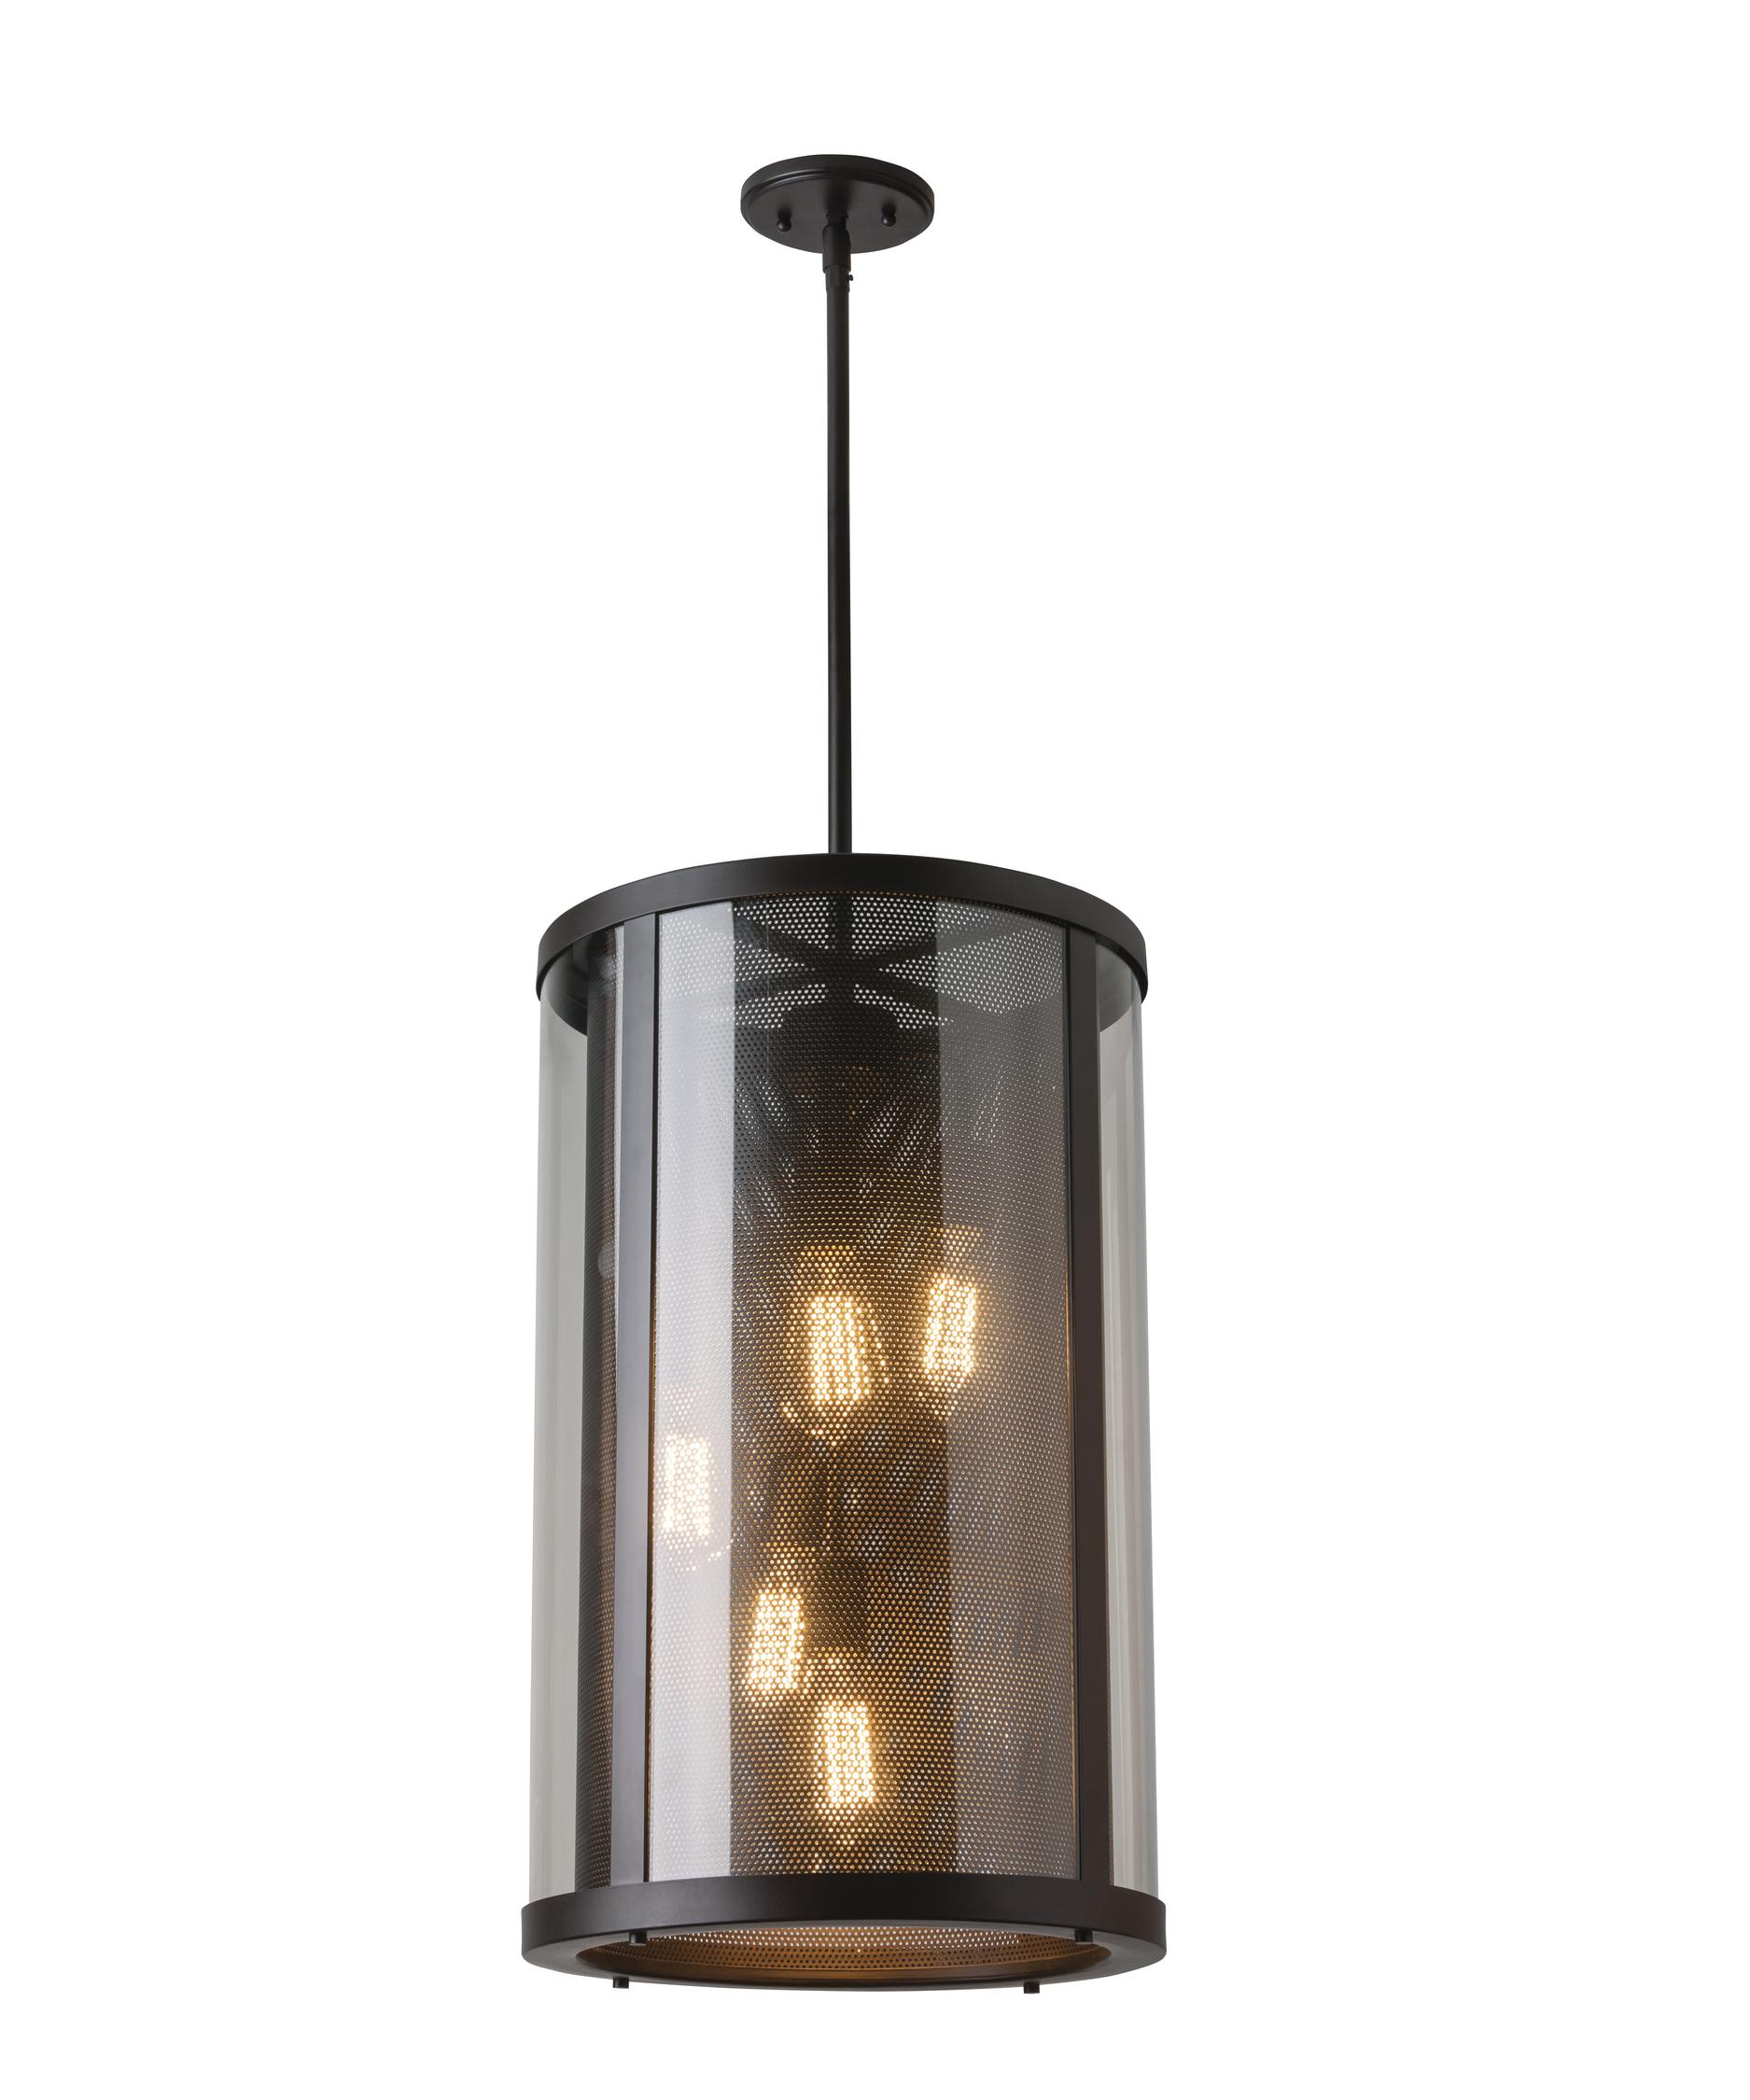 Outdoor hanging lamp - Shown In Oil Rubbed Bronze Finish And Clear Glass